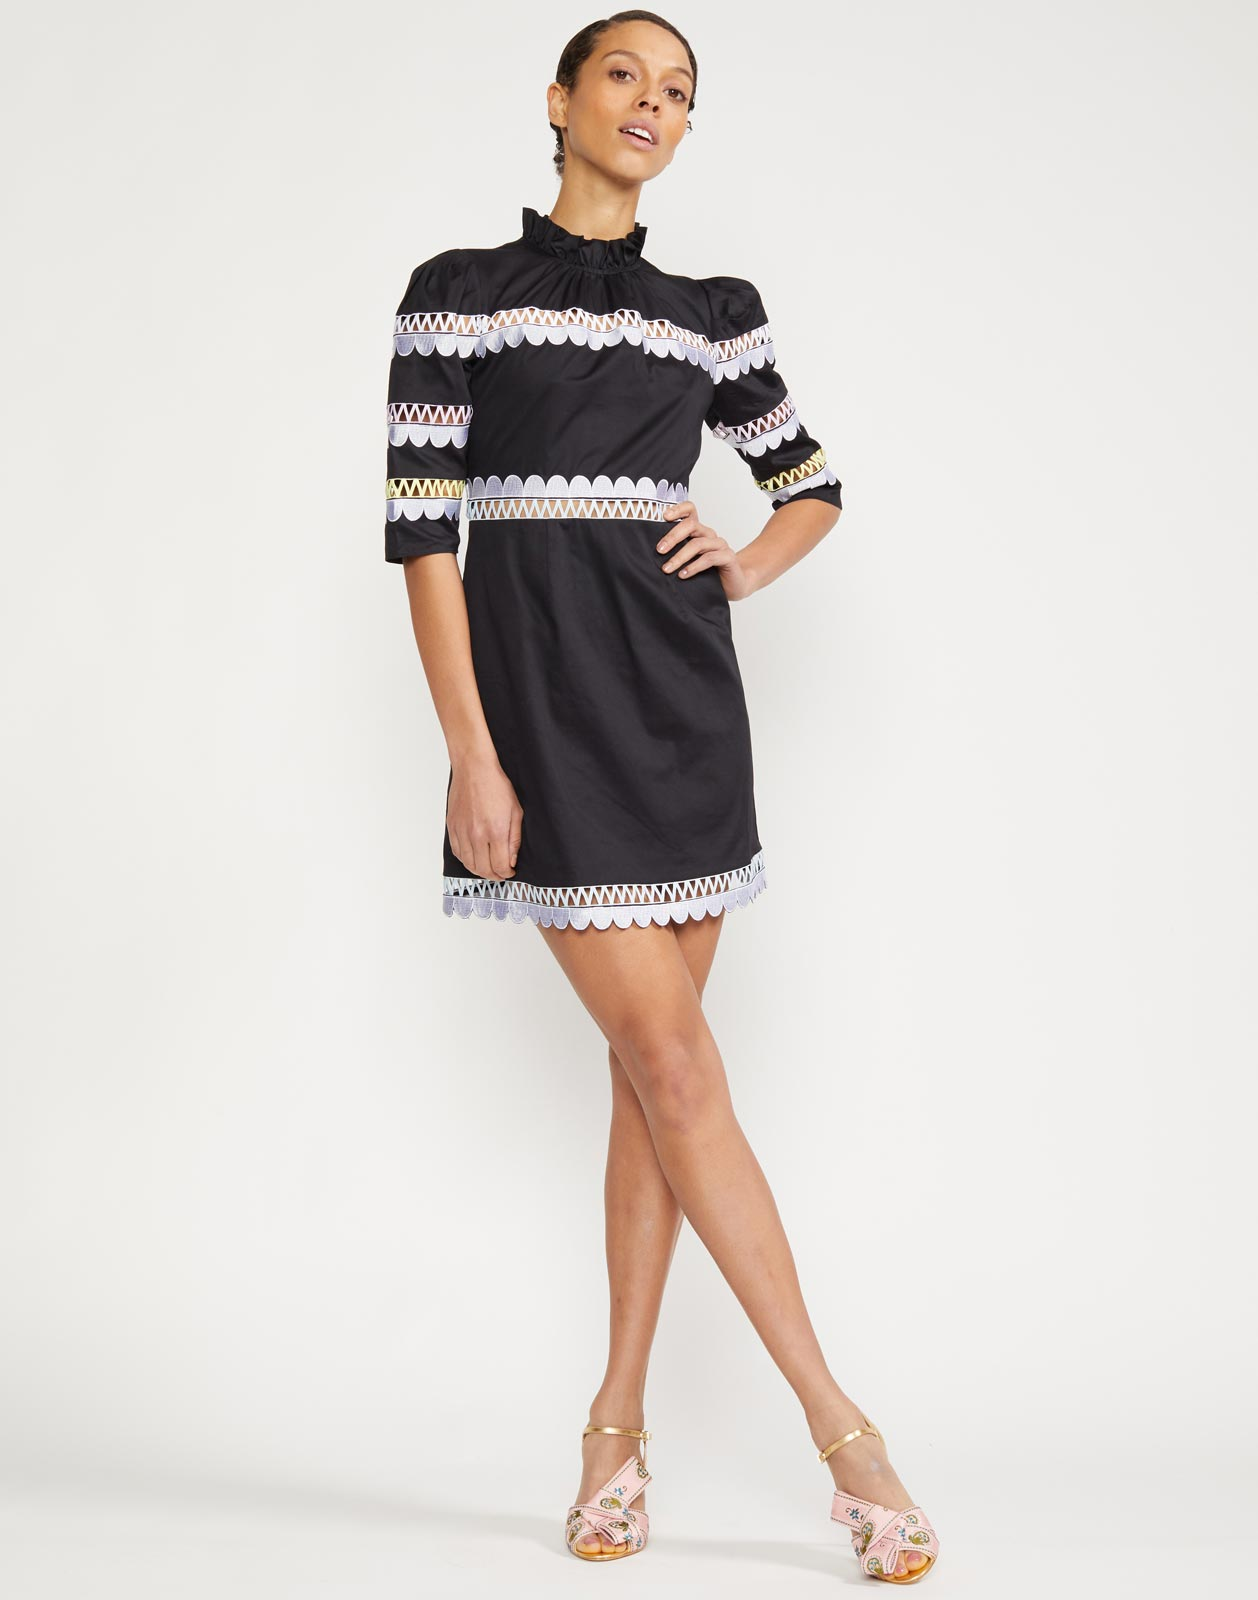 Whitley Scallop Embroidered Dress